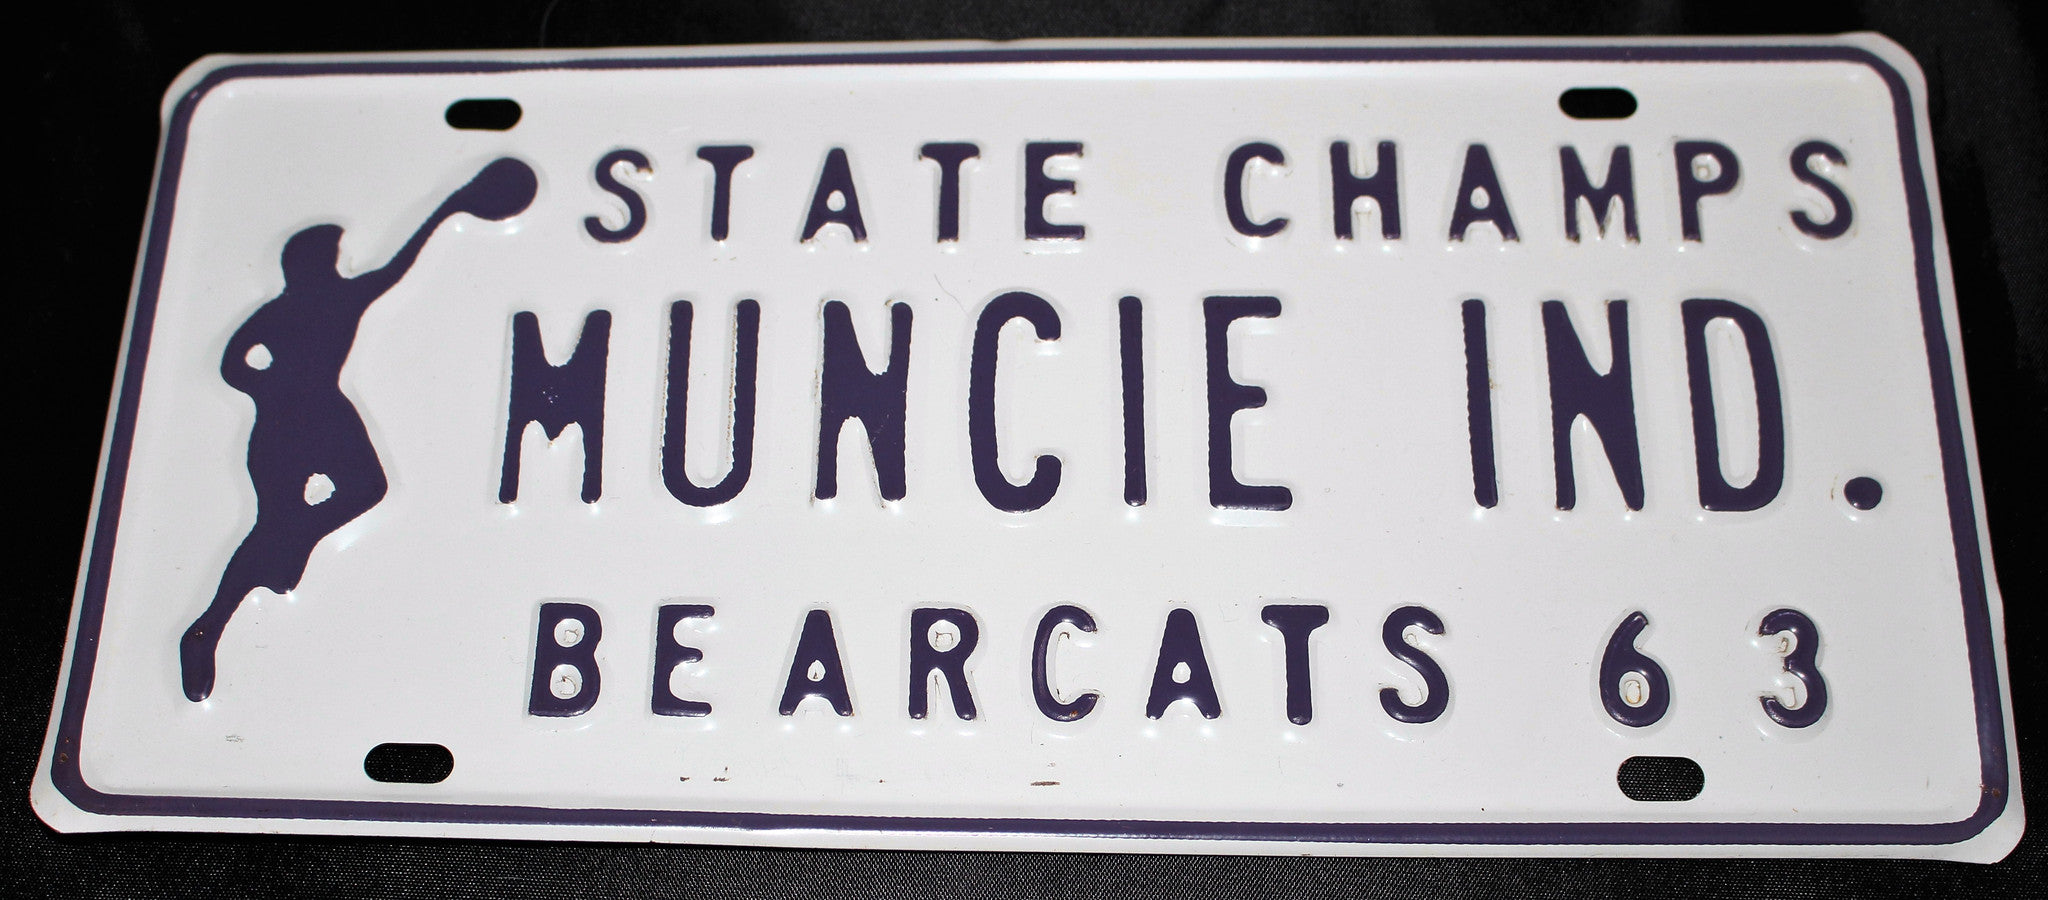 1963 Muncie Central H.S. Basketball State Champions License Plate - Vintage Indy Sports